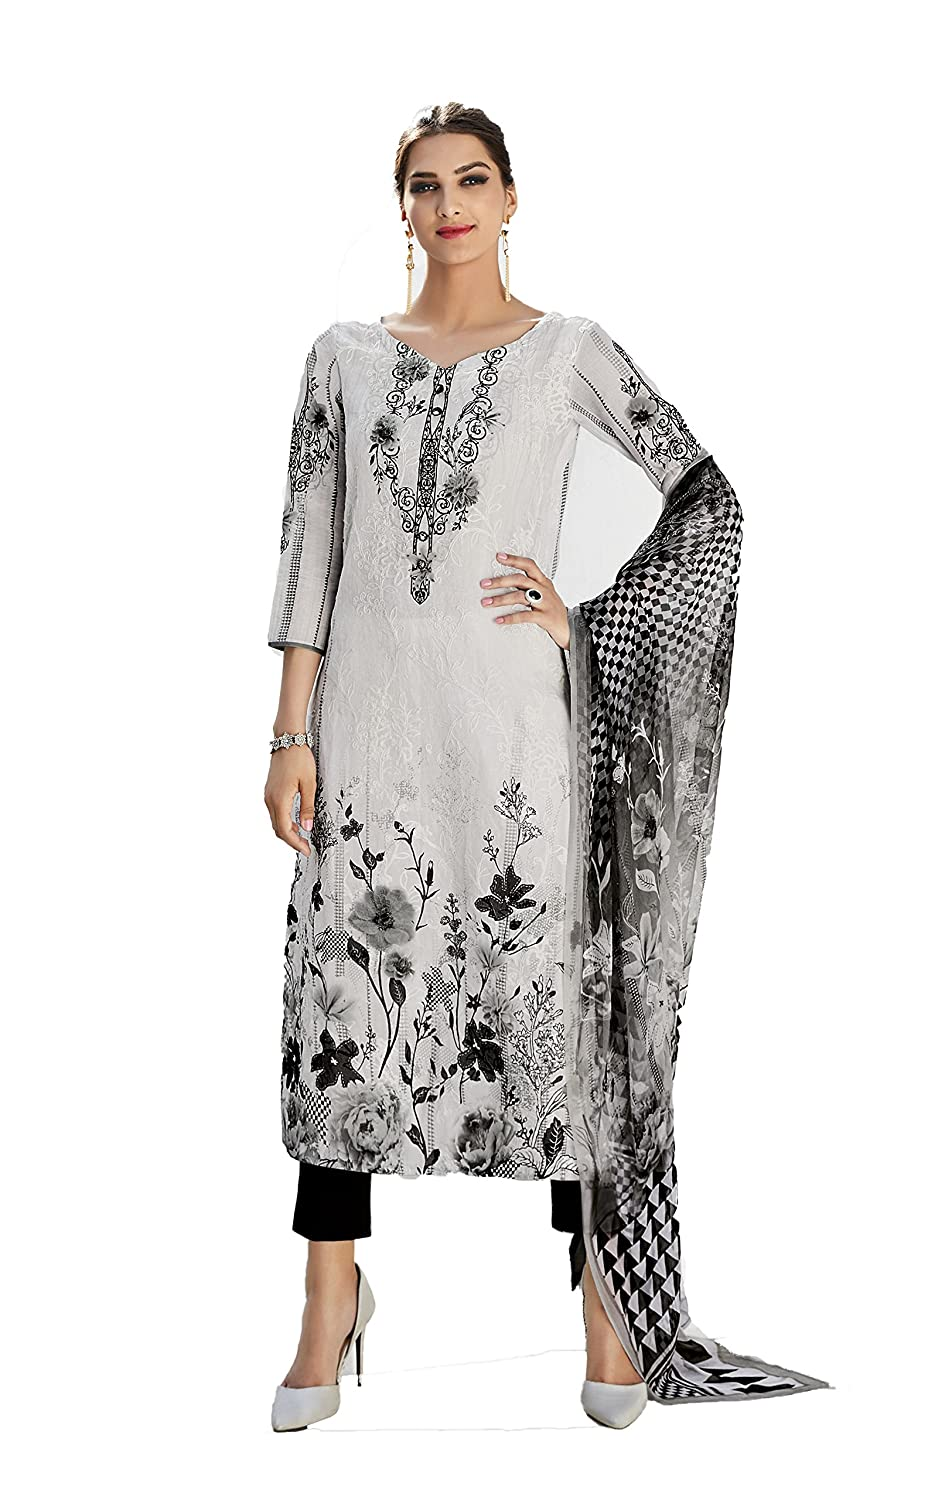 d41185fcf1 PRETTY BLACK AND WHITE COTTON CASUAL WEAR PAKISTANI STYLE SUIT: Amazon.in:  Clothing & Accessories